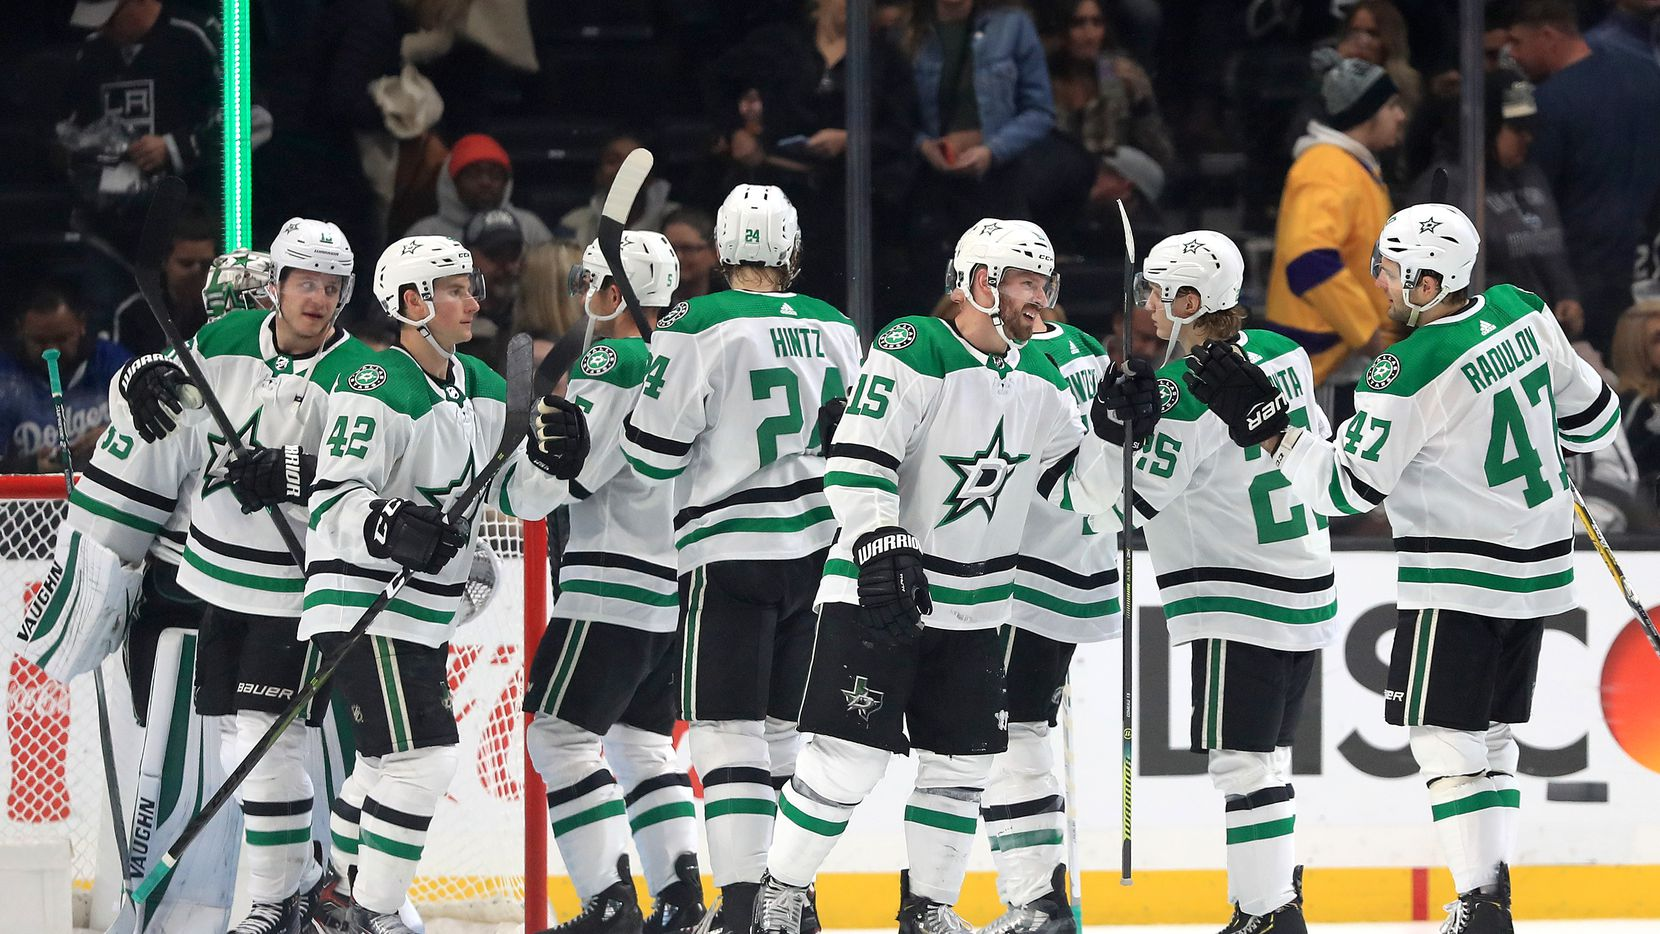 LOS ANGELES, CALIFORNIA - JANUARY 08:  Alexander Radulov #47, Taylor Fedun #42, Roope Hintz #24, Blake Comeau #15, Joel Kiviranta #25, and Anton Khudobin #35 of the Dallas Stars celebrate after defeating the Los Angeles Kings 2-1 in a game at Staples Center on January 08, 2020 in Los Angeles, California.